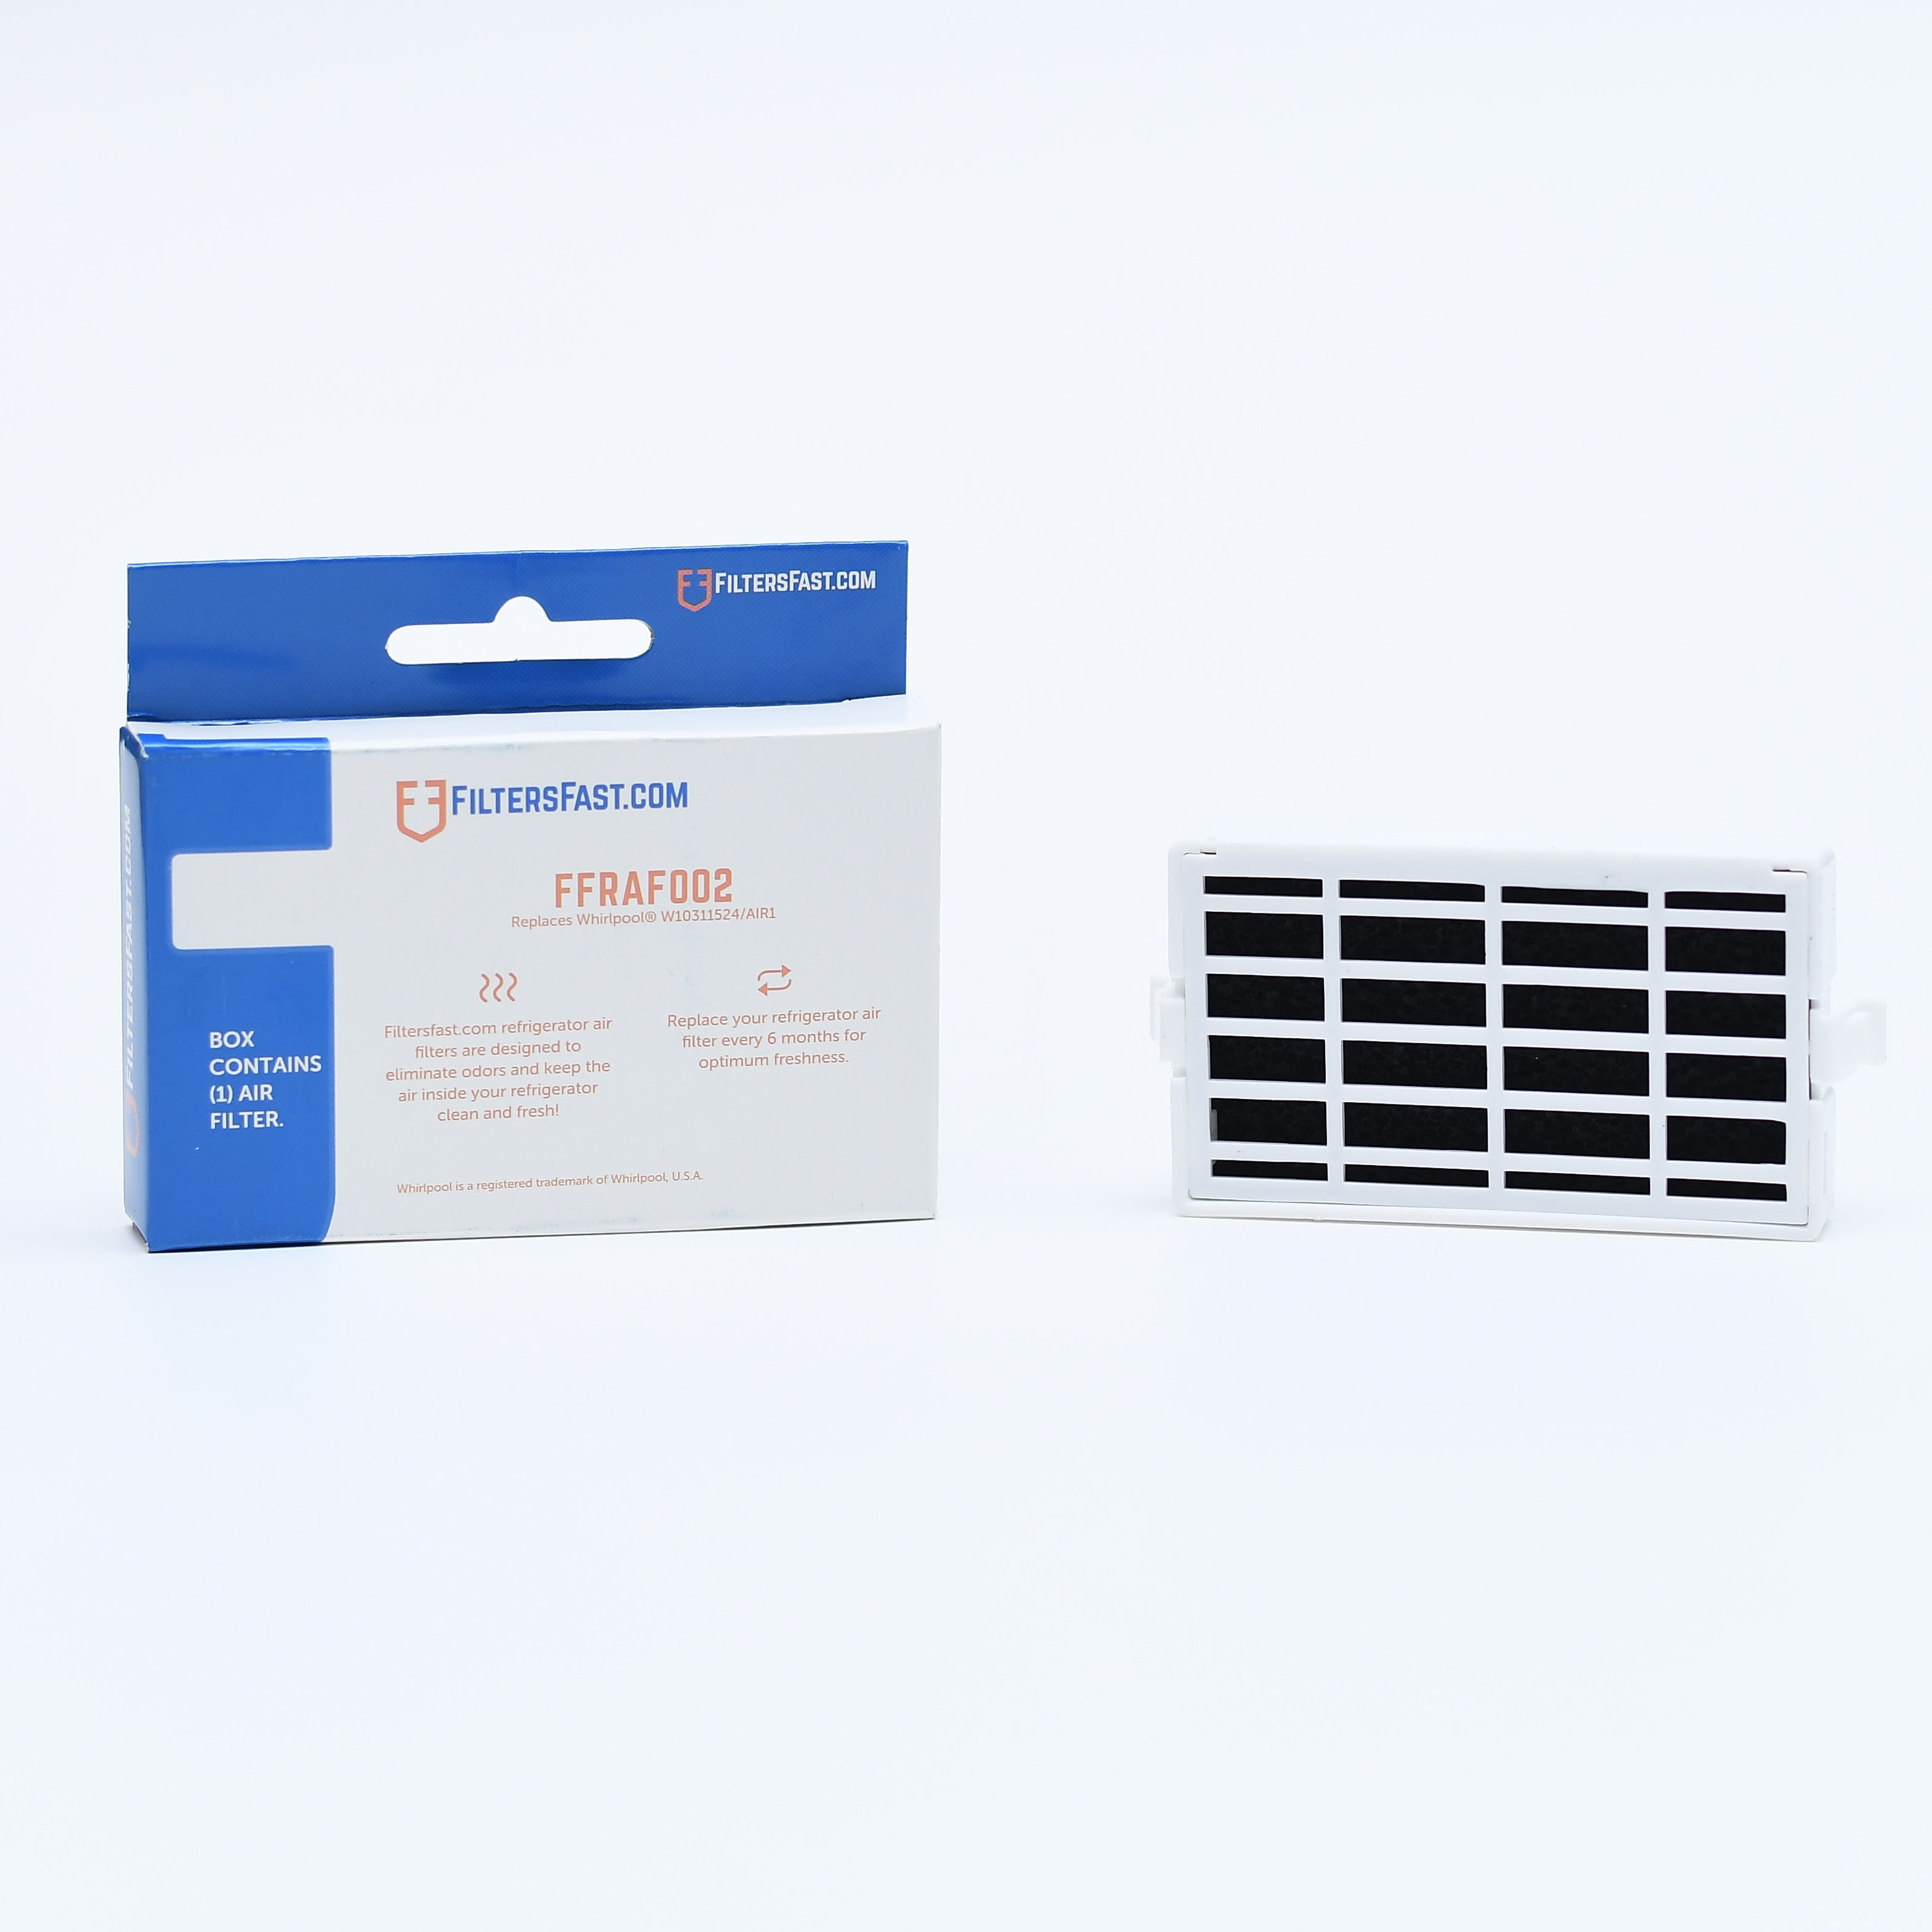 W10311524 Replacement Filter by FiltersFast for Whirlpool - FFRAF-002